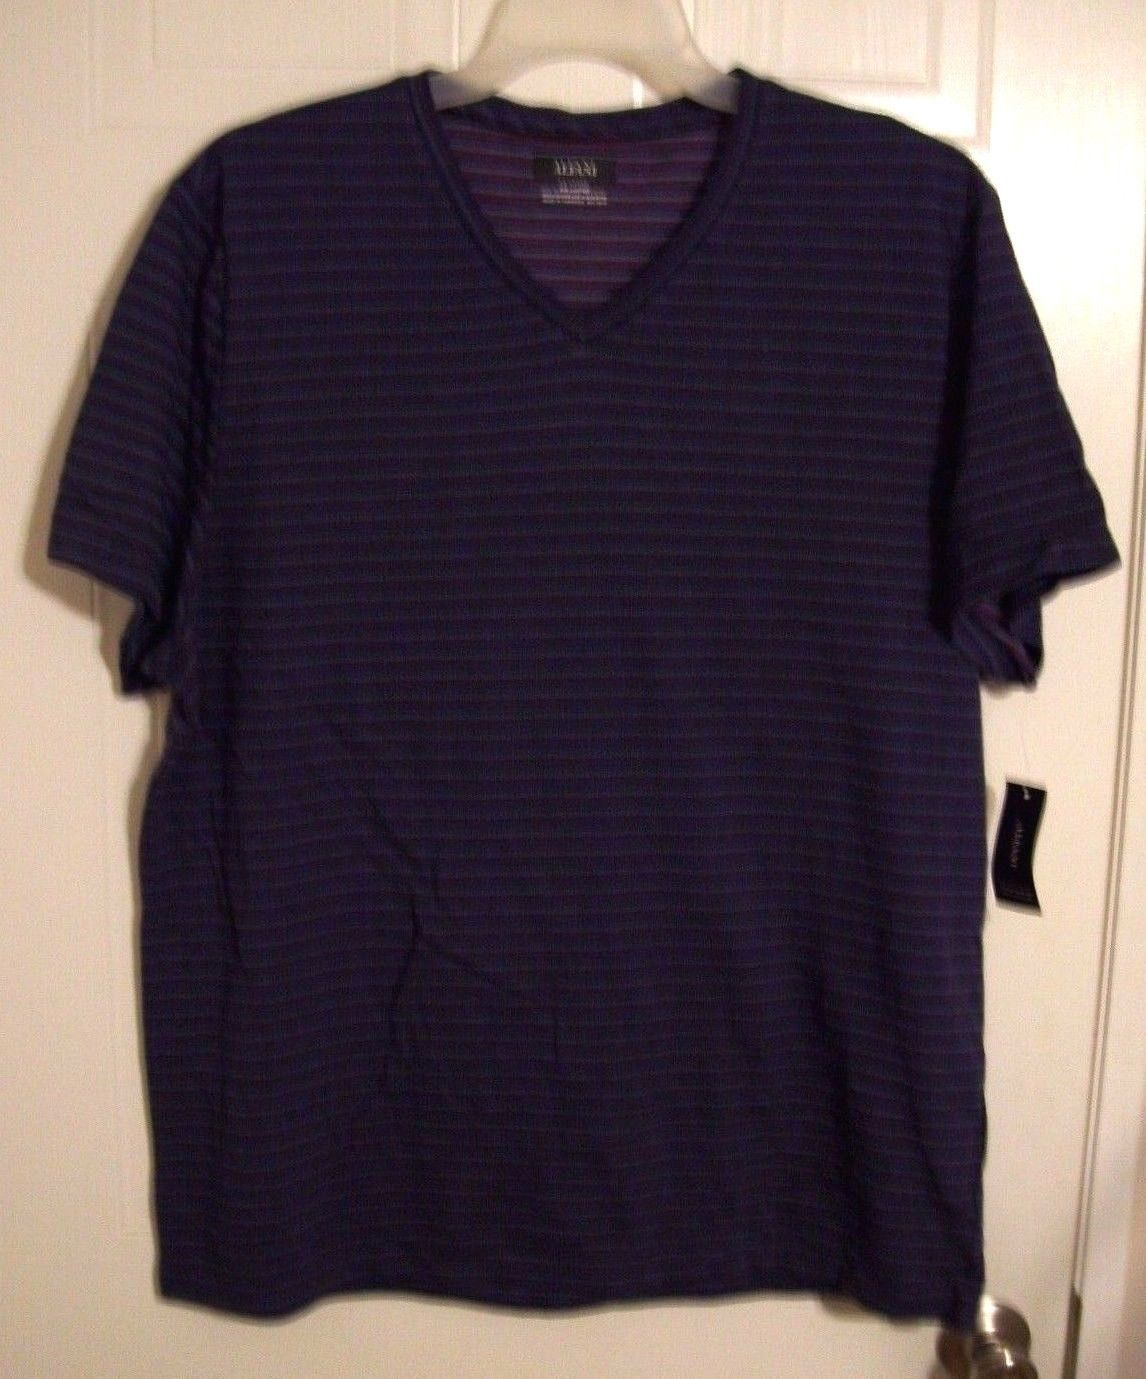 ebfbdec5bfe9 Alfani Men's Short Sleeve V-Neck Casual Shirt / Top - Ocean Night - Size:  XXL